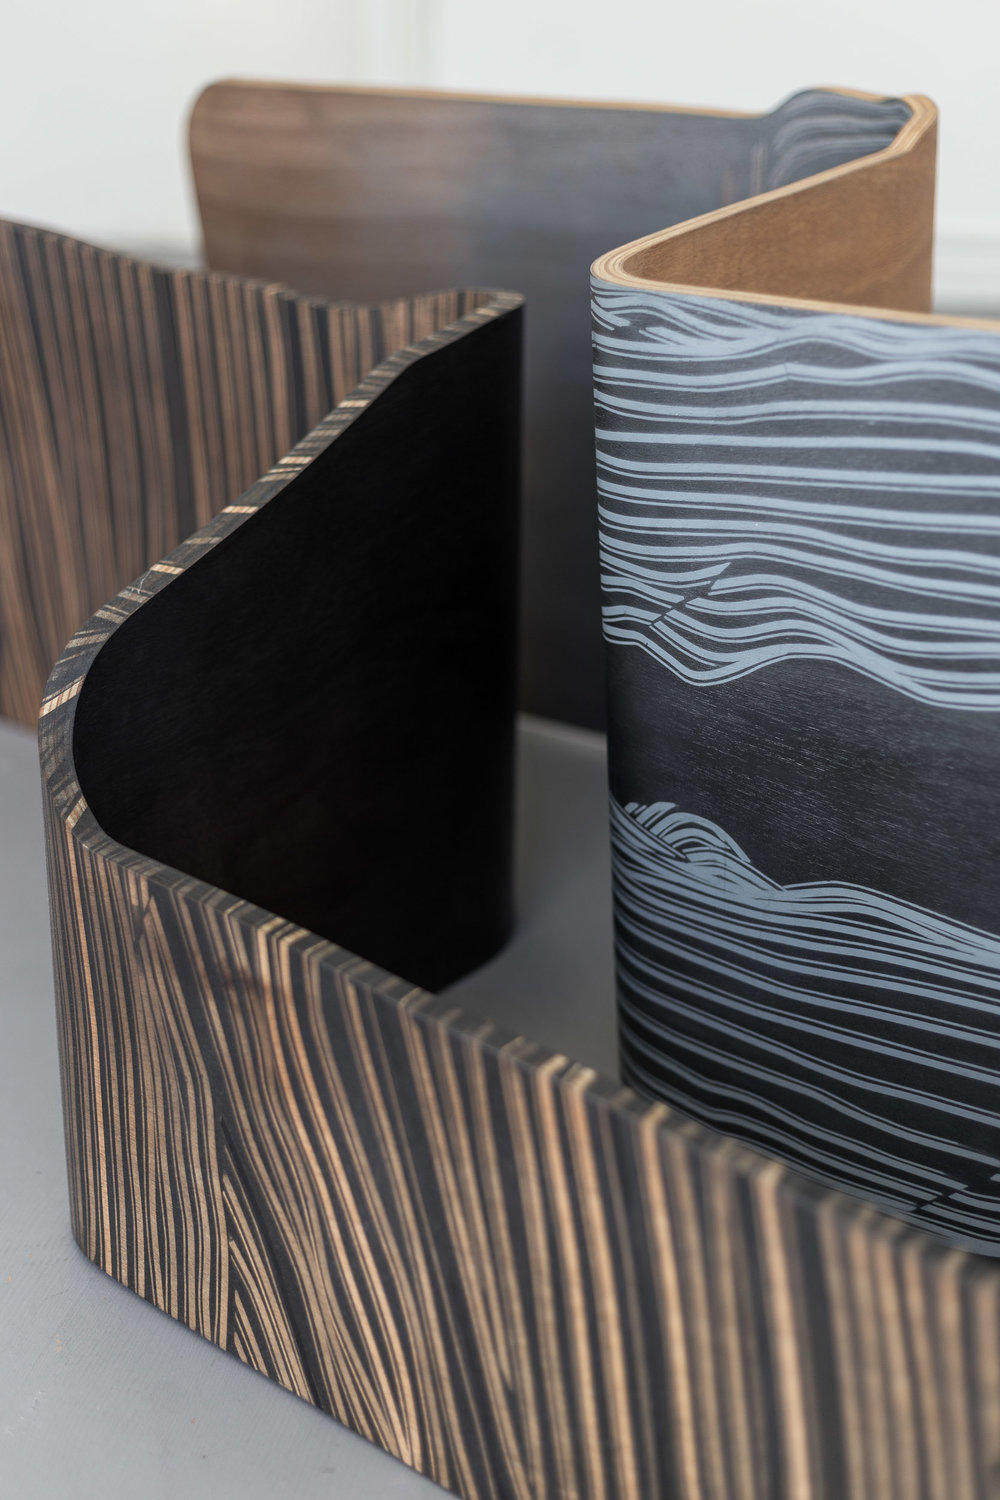 Fiona Banner,  Spooning Chairs  (detail), 2015, graphite, vinyl, plywood, chair base, 144 x 52 x 36 cm; 158 x 46 x 51 cm  Photo: Kilian Bannwart